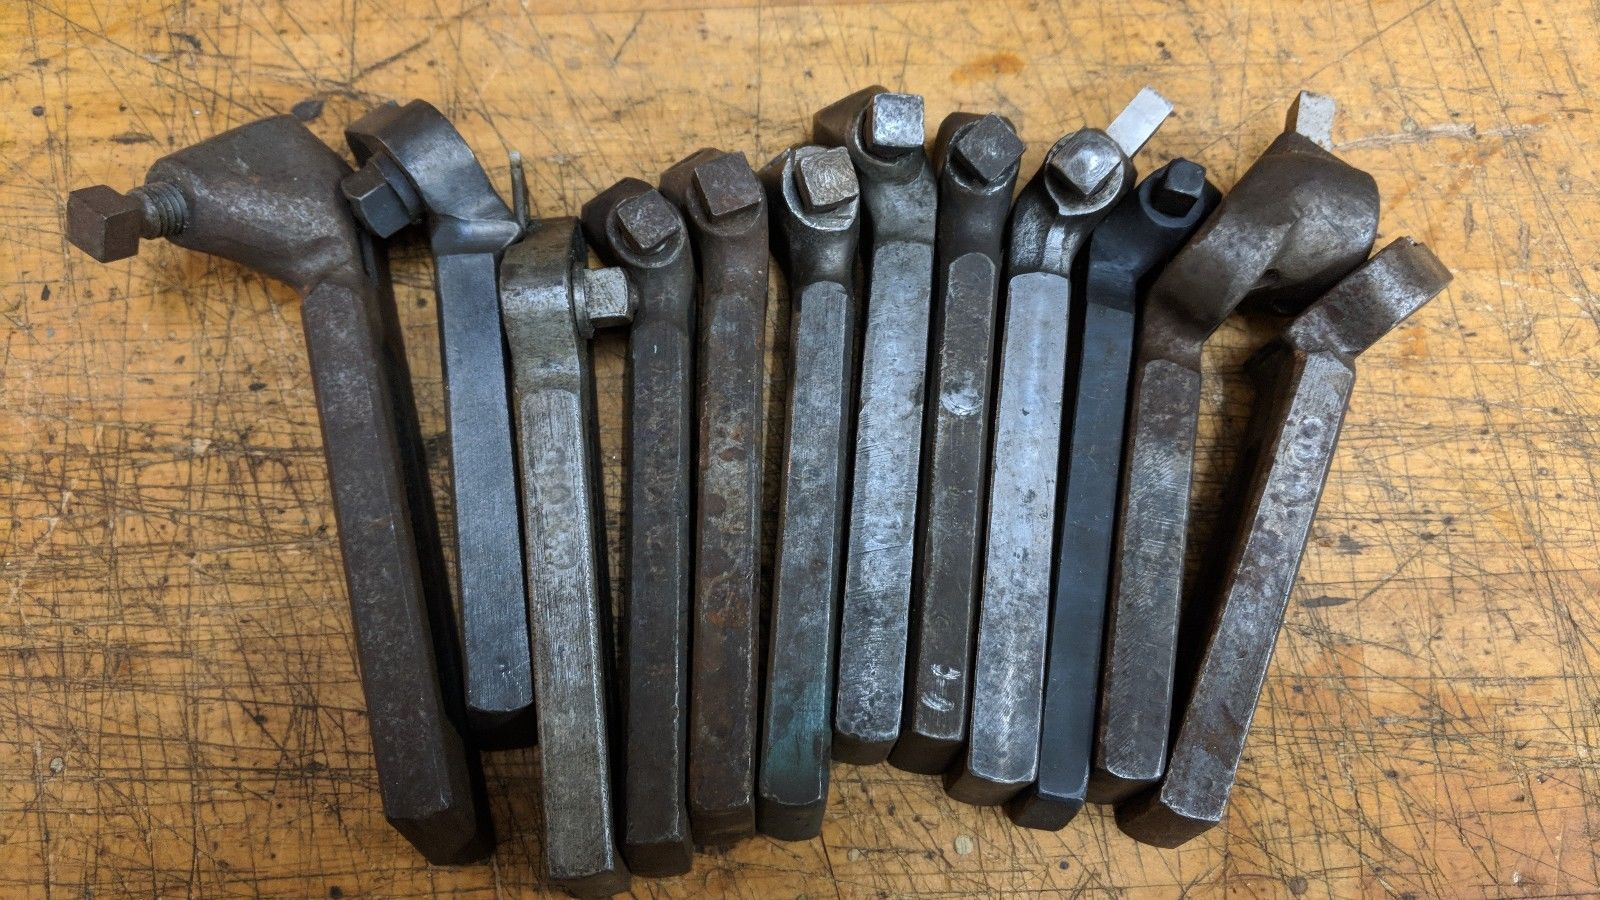 12 ASSORTED METAL LATHE LANTERN TOOL POST BIT HOLDERS ARMSTRONG JH WILLIAMS